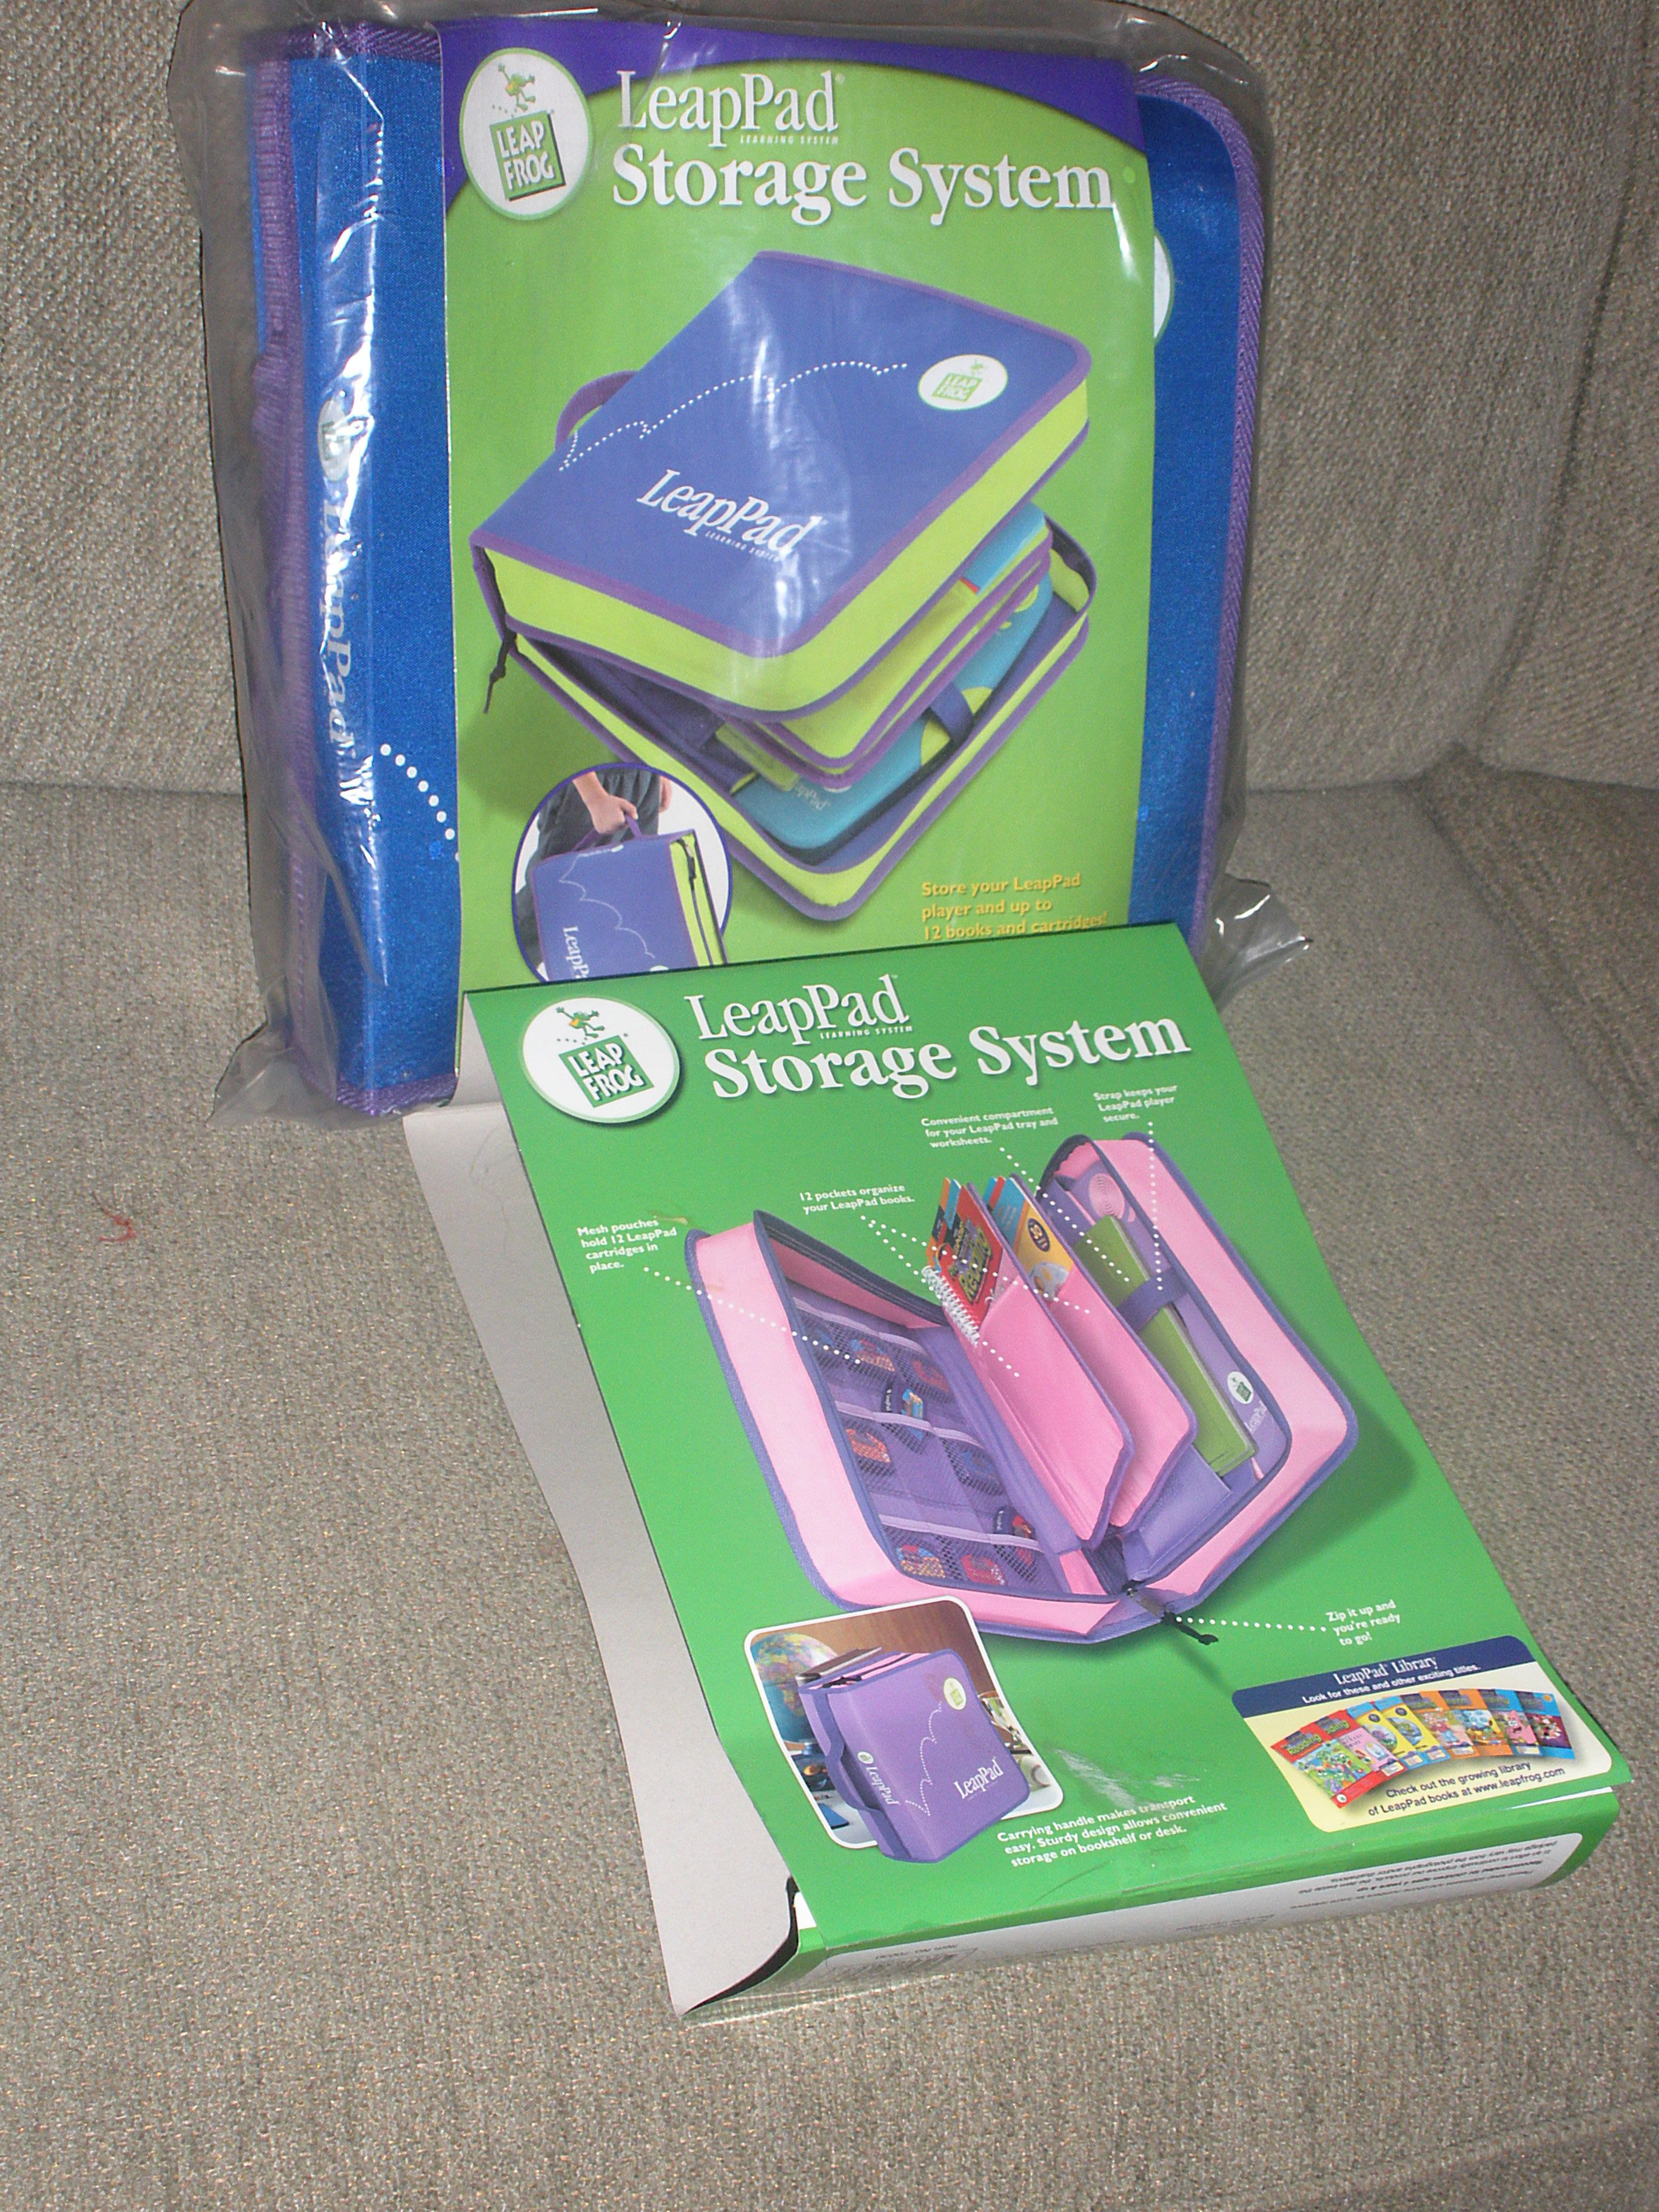 LeapPad Storage System In Hiddentreasures4uu0027s Garage Sale In Sun City , CA  For $10.00. Leap